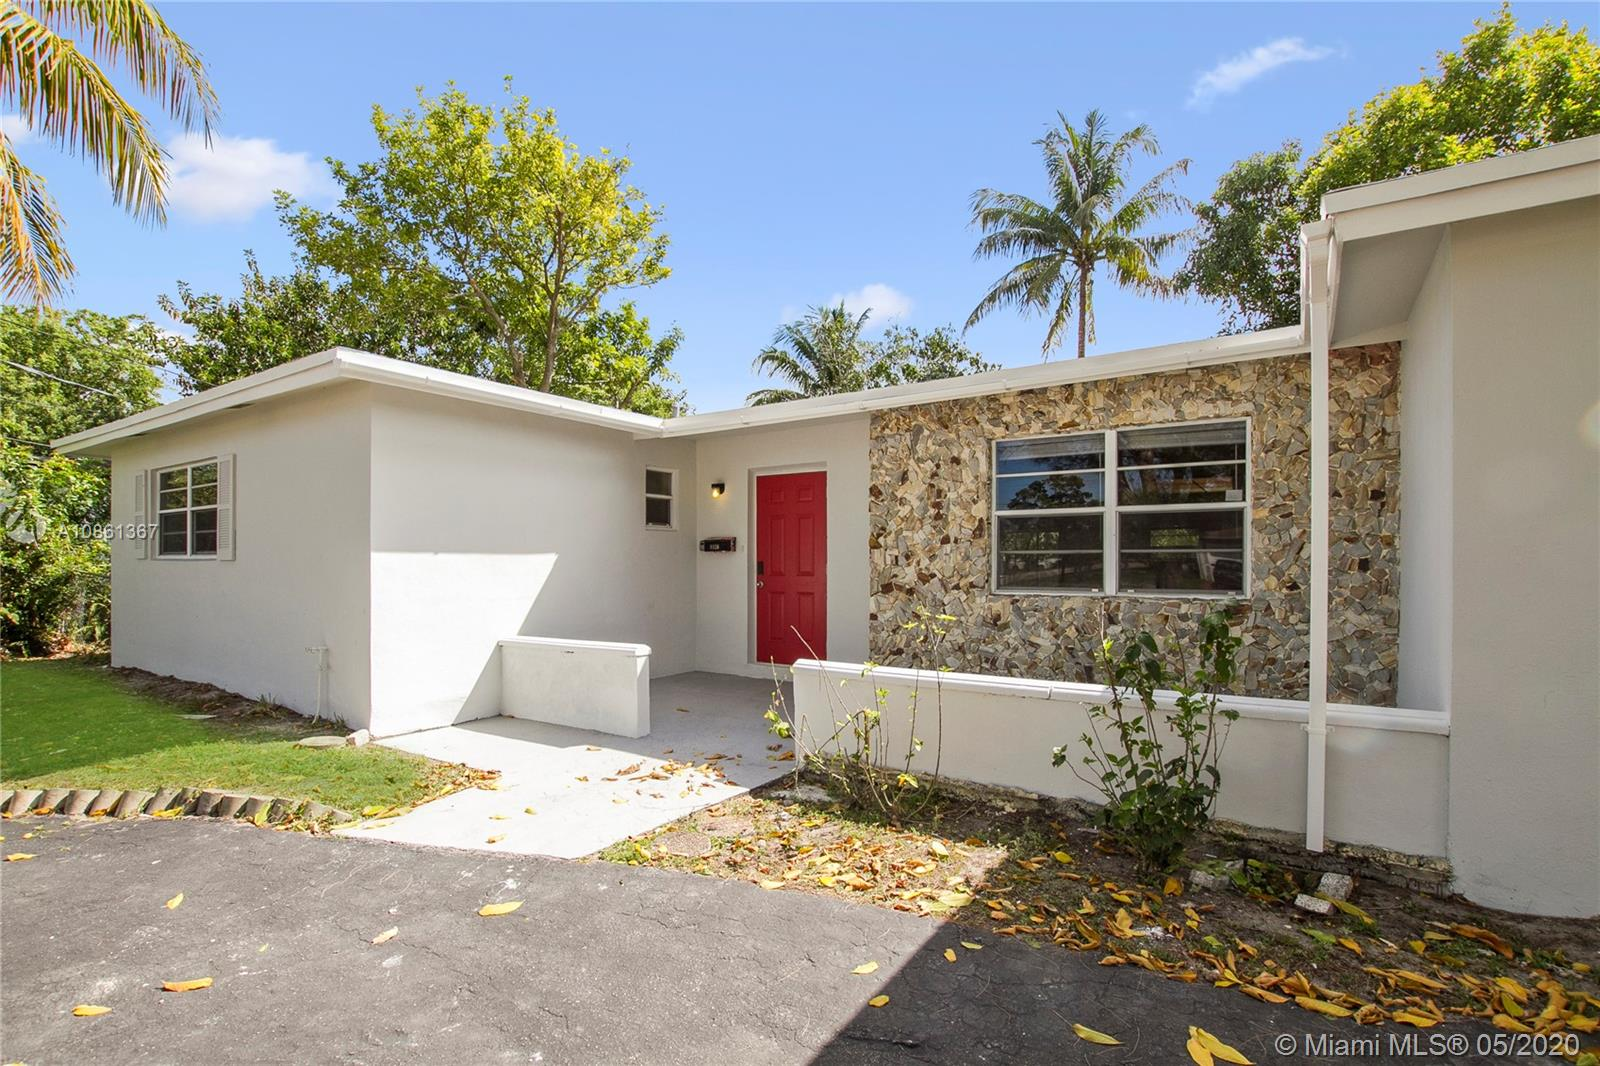 Newly renovated and move-in ready! This lovely 3 bedroom 2 bath home is waiting for you! Come tour today!